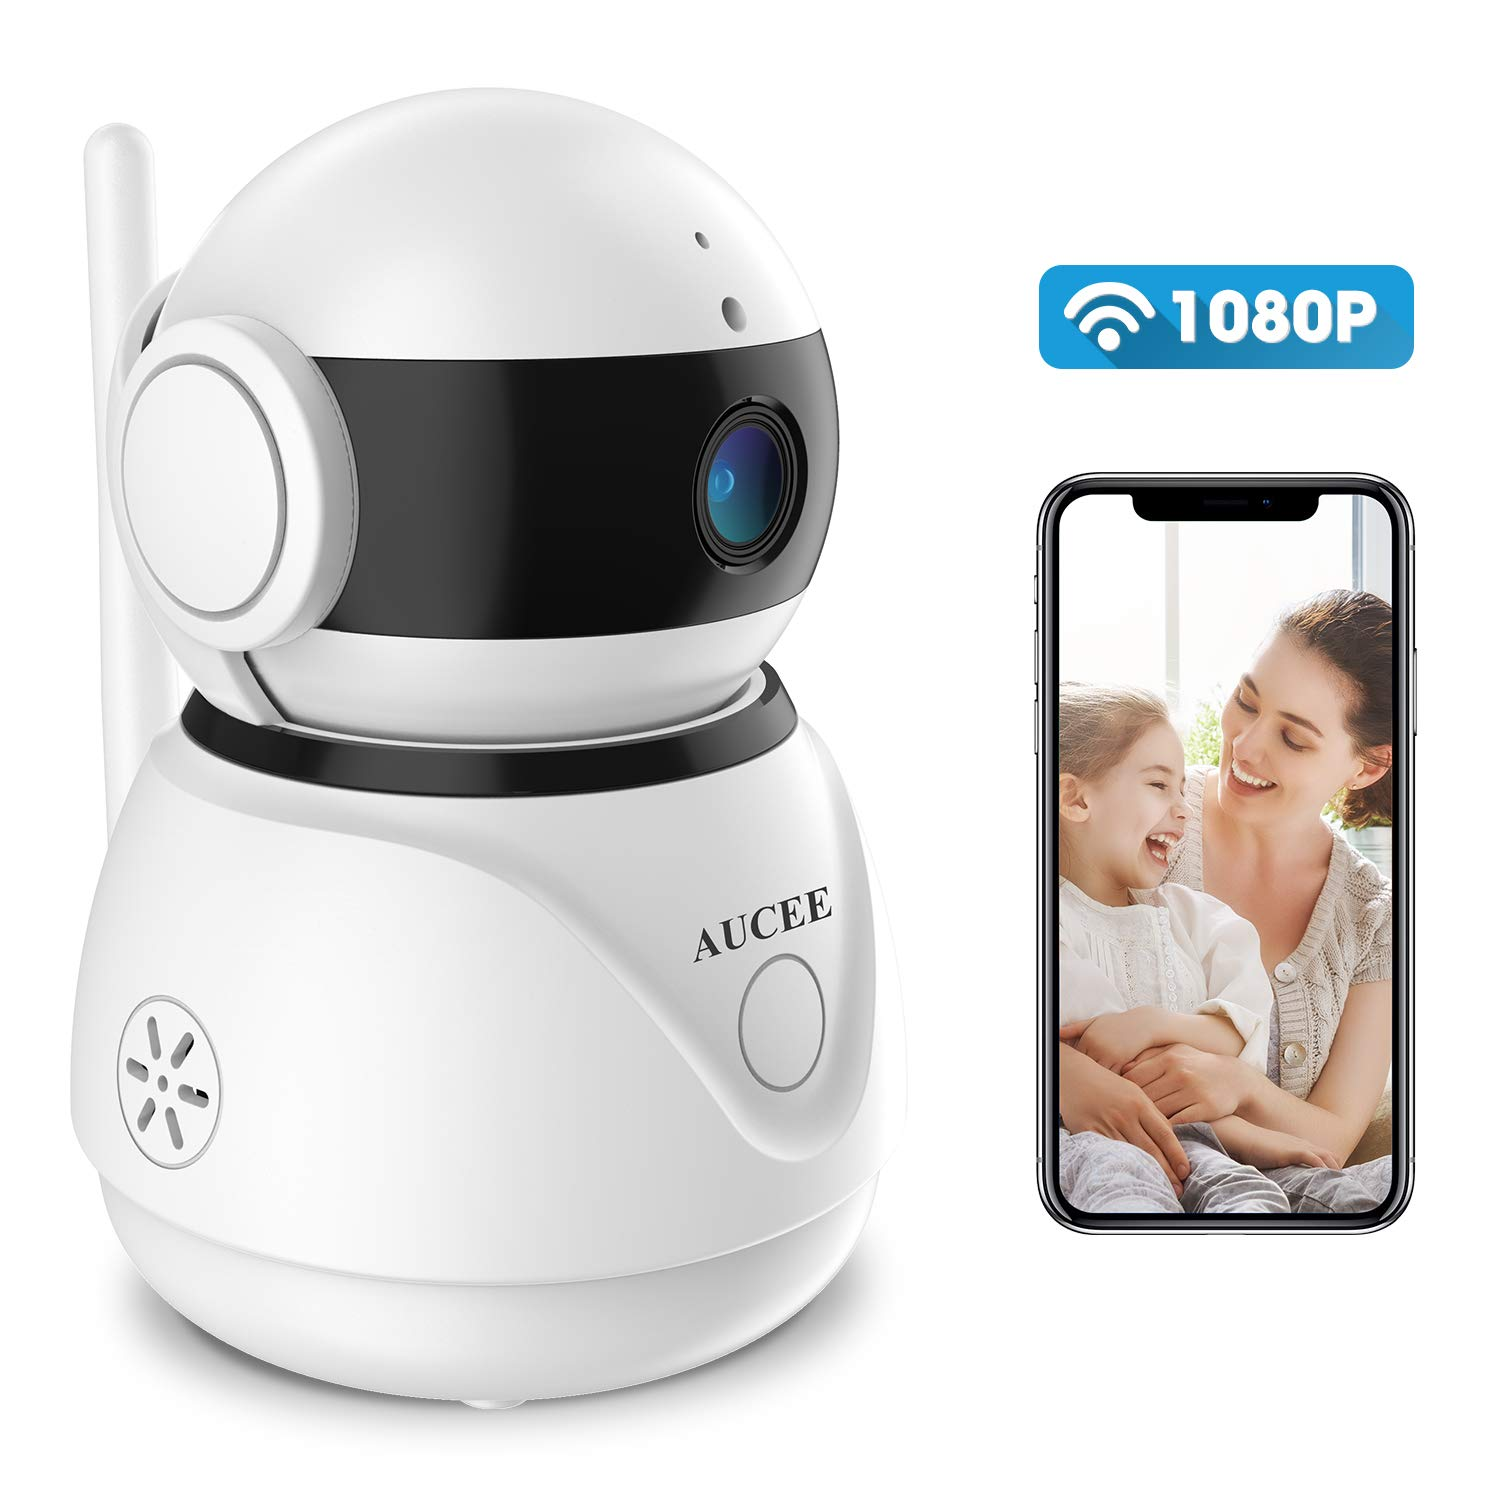 WiFi IP Camera,AUCEE 1080P Baby Monitor Wireless Indoor Security Camera with Night Vision Motion Detection 2-Way Audio Home Security Surveillance Pan/Tilt/Zoom Monitor for Baby/Elder/Pet